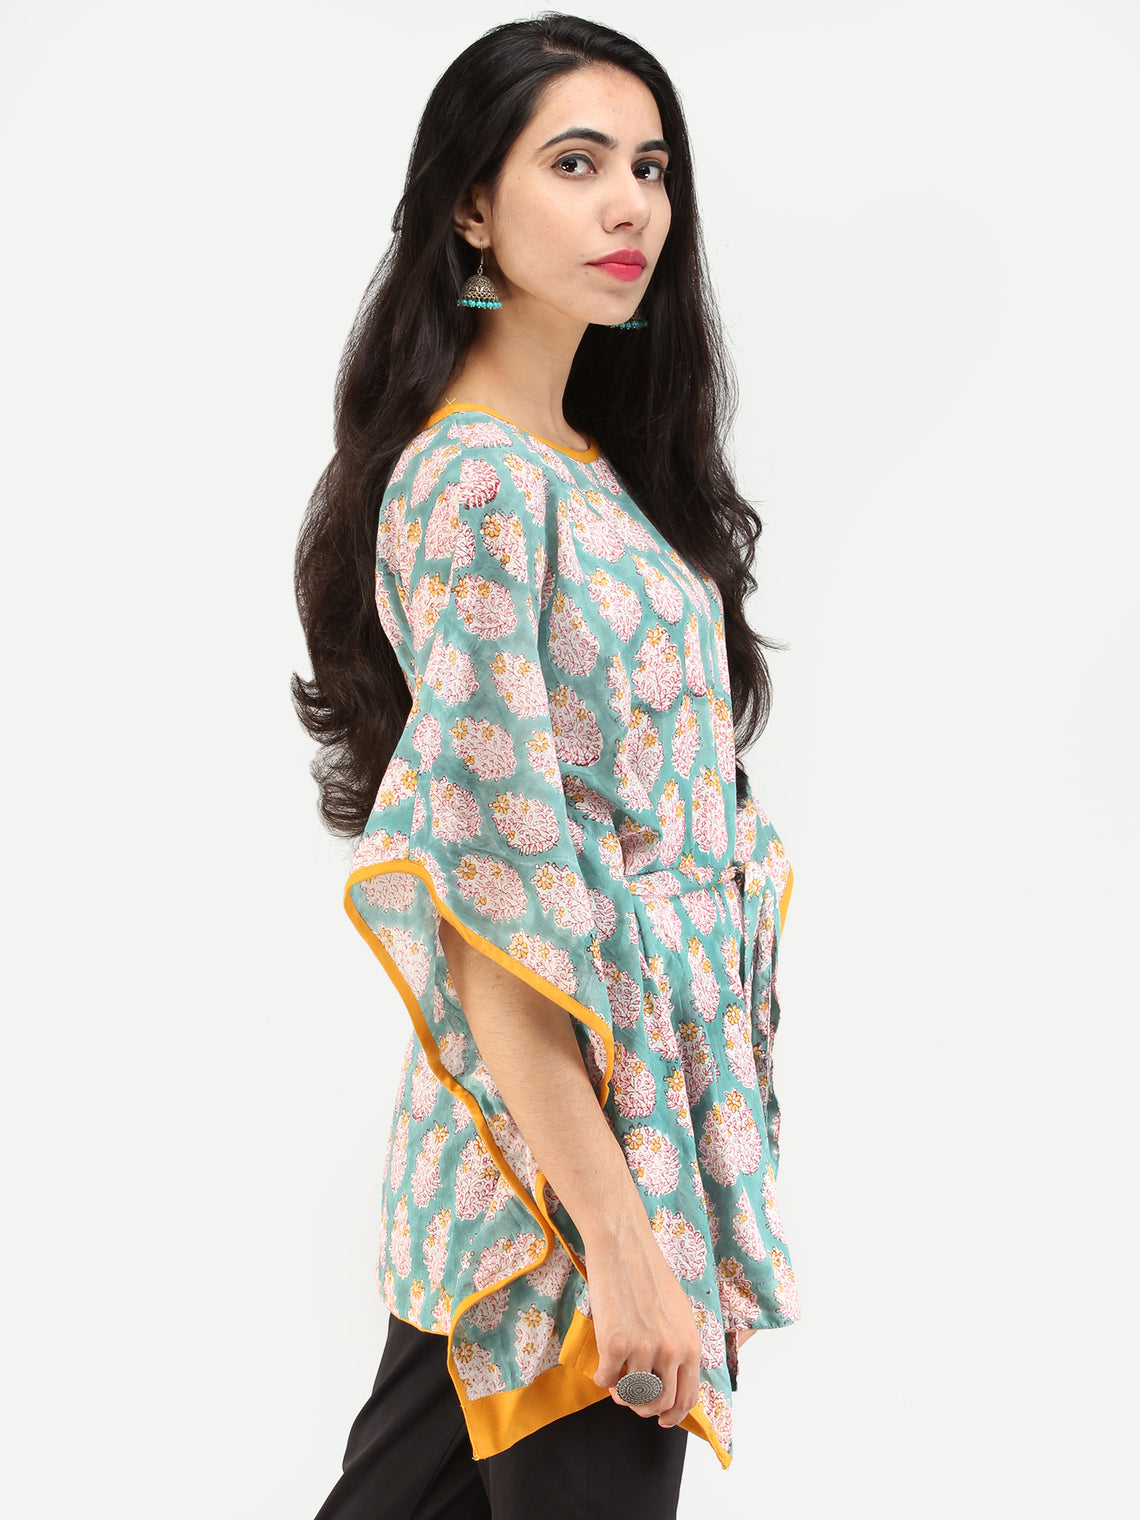 Rangrez Jahaan - Kaftan Cotton Top - T72F2147